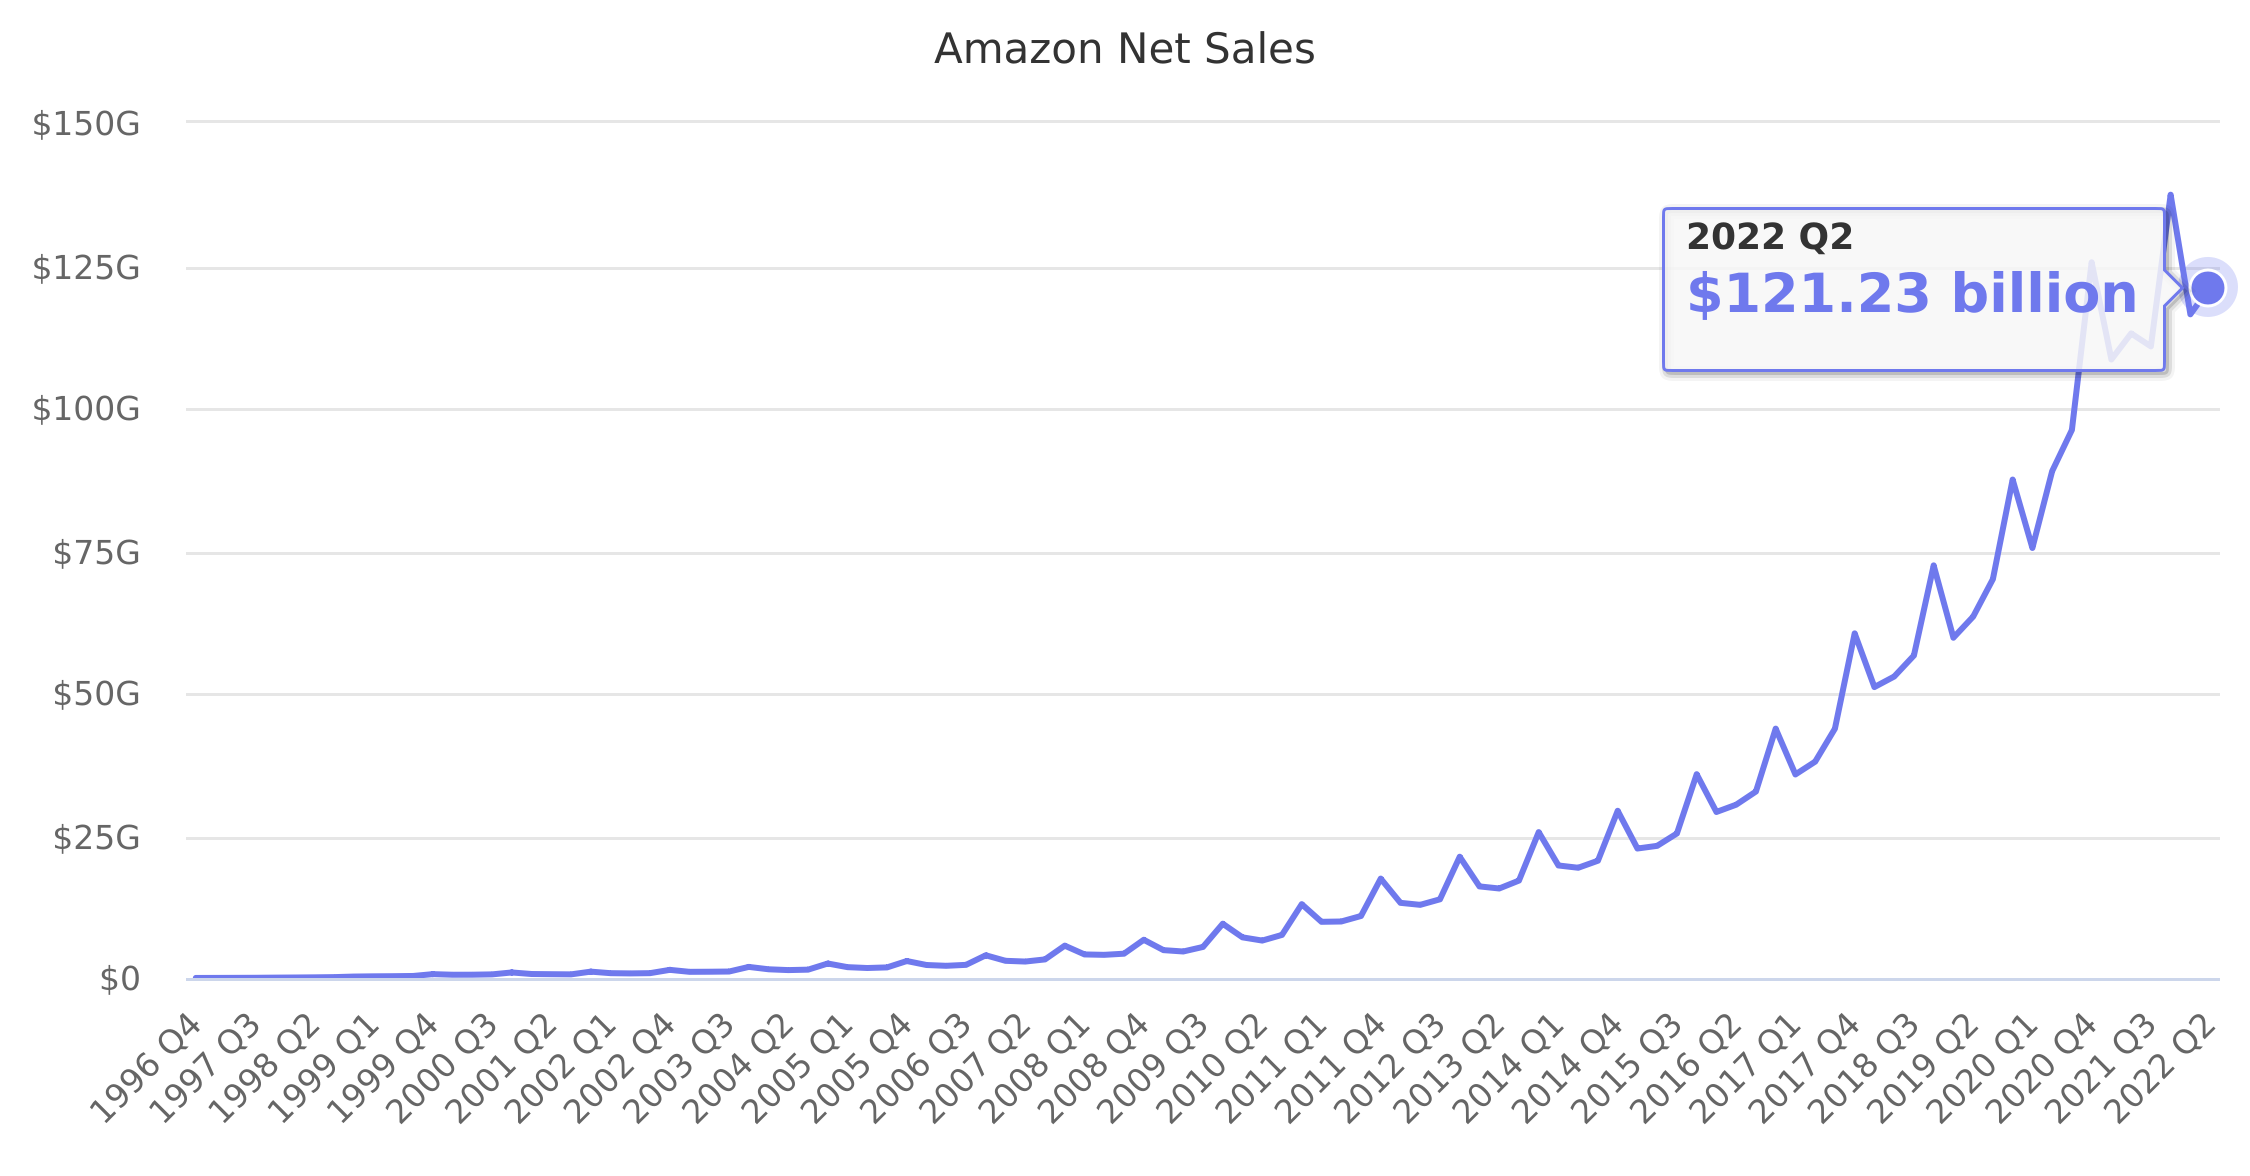 Amazon Net Sales 1996-2019